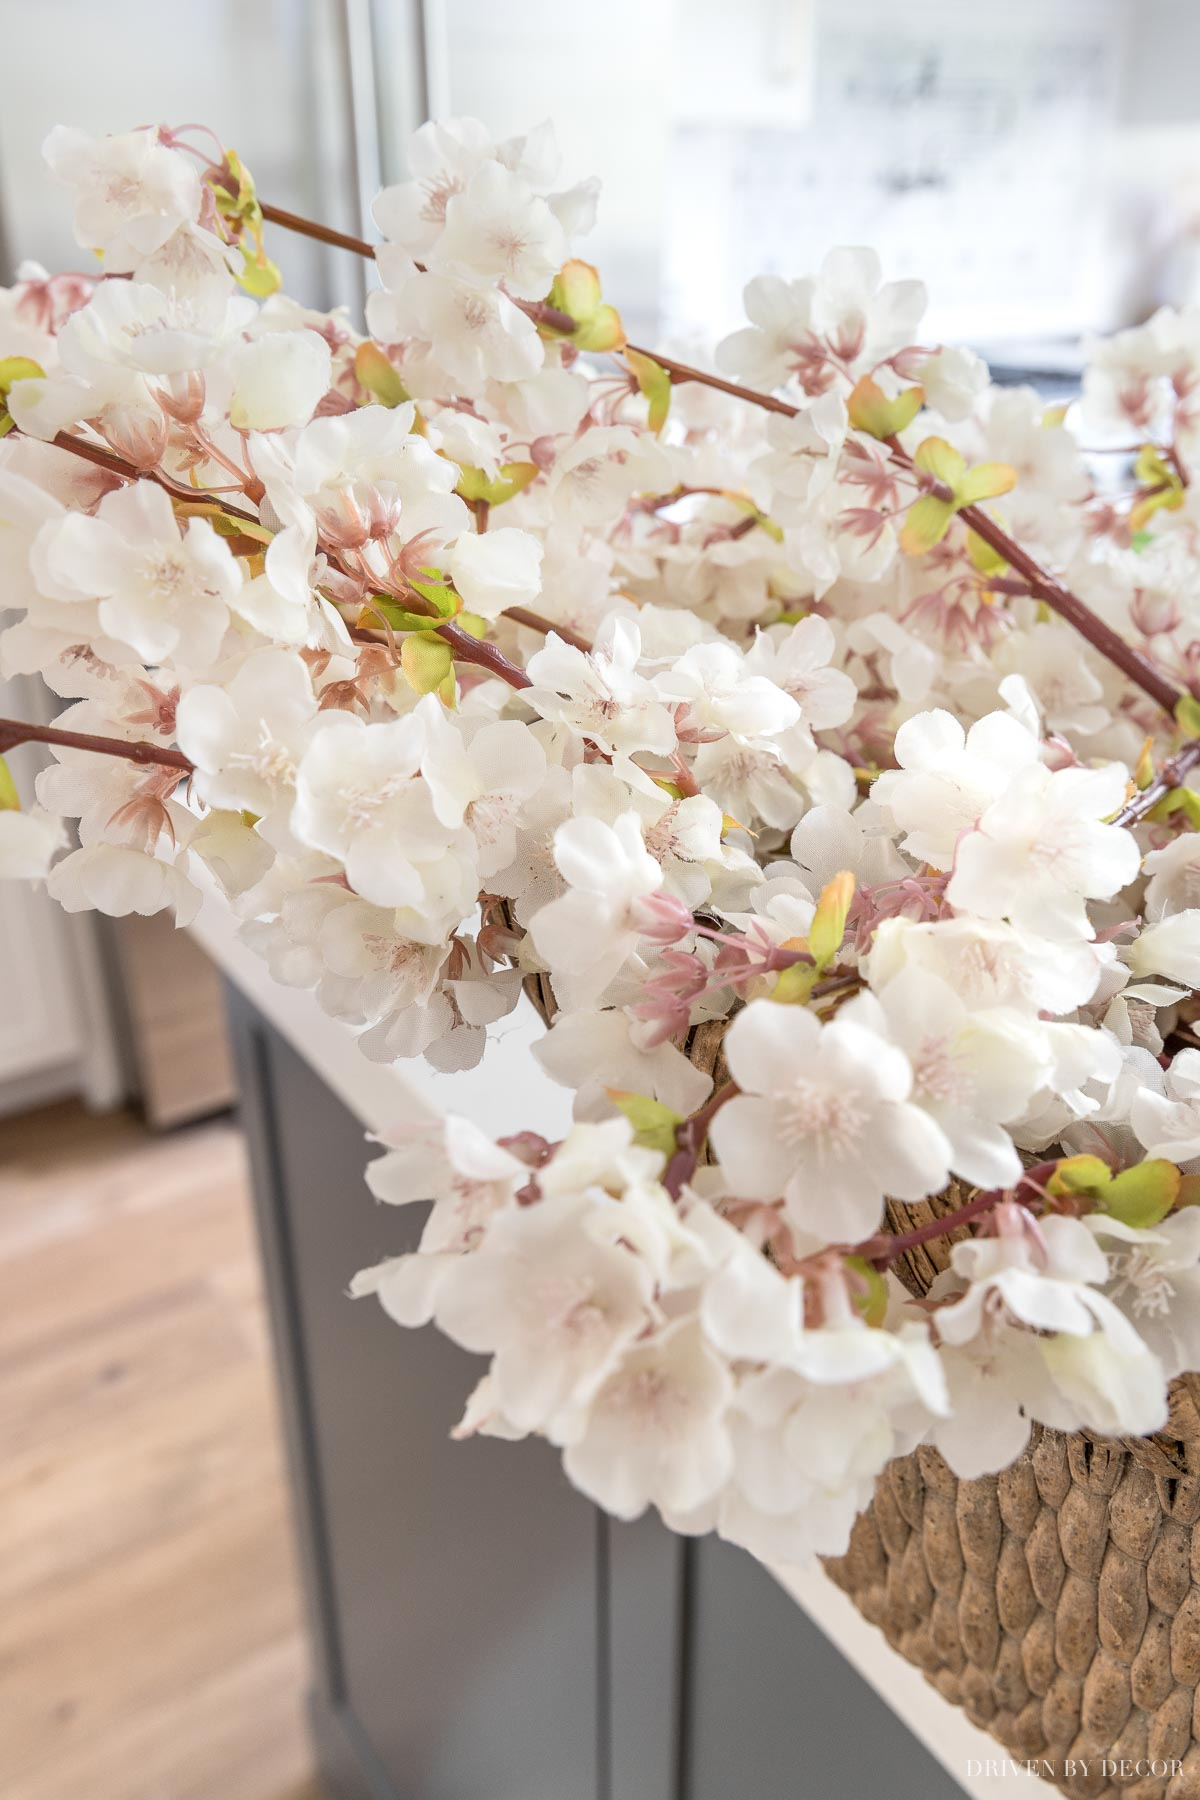 These artificial cherry blossoms look SO real!